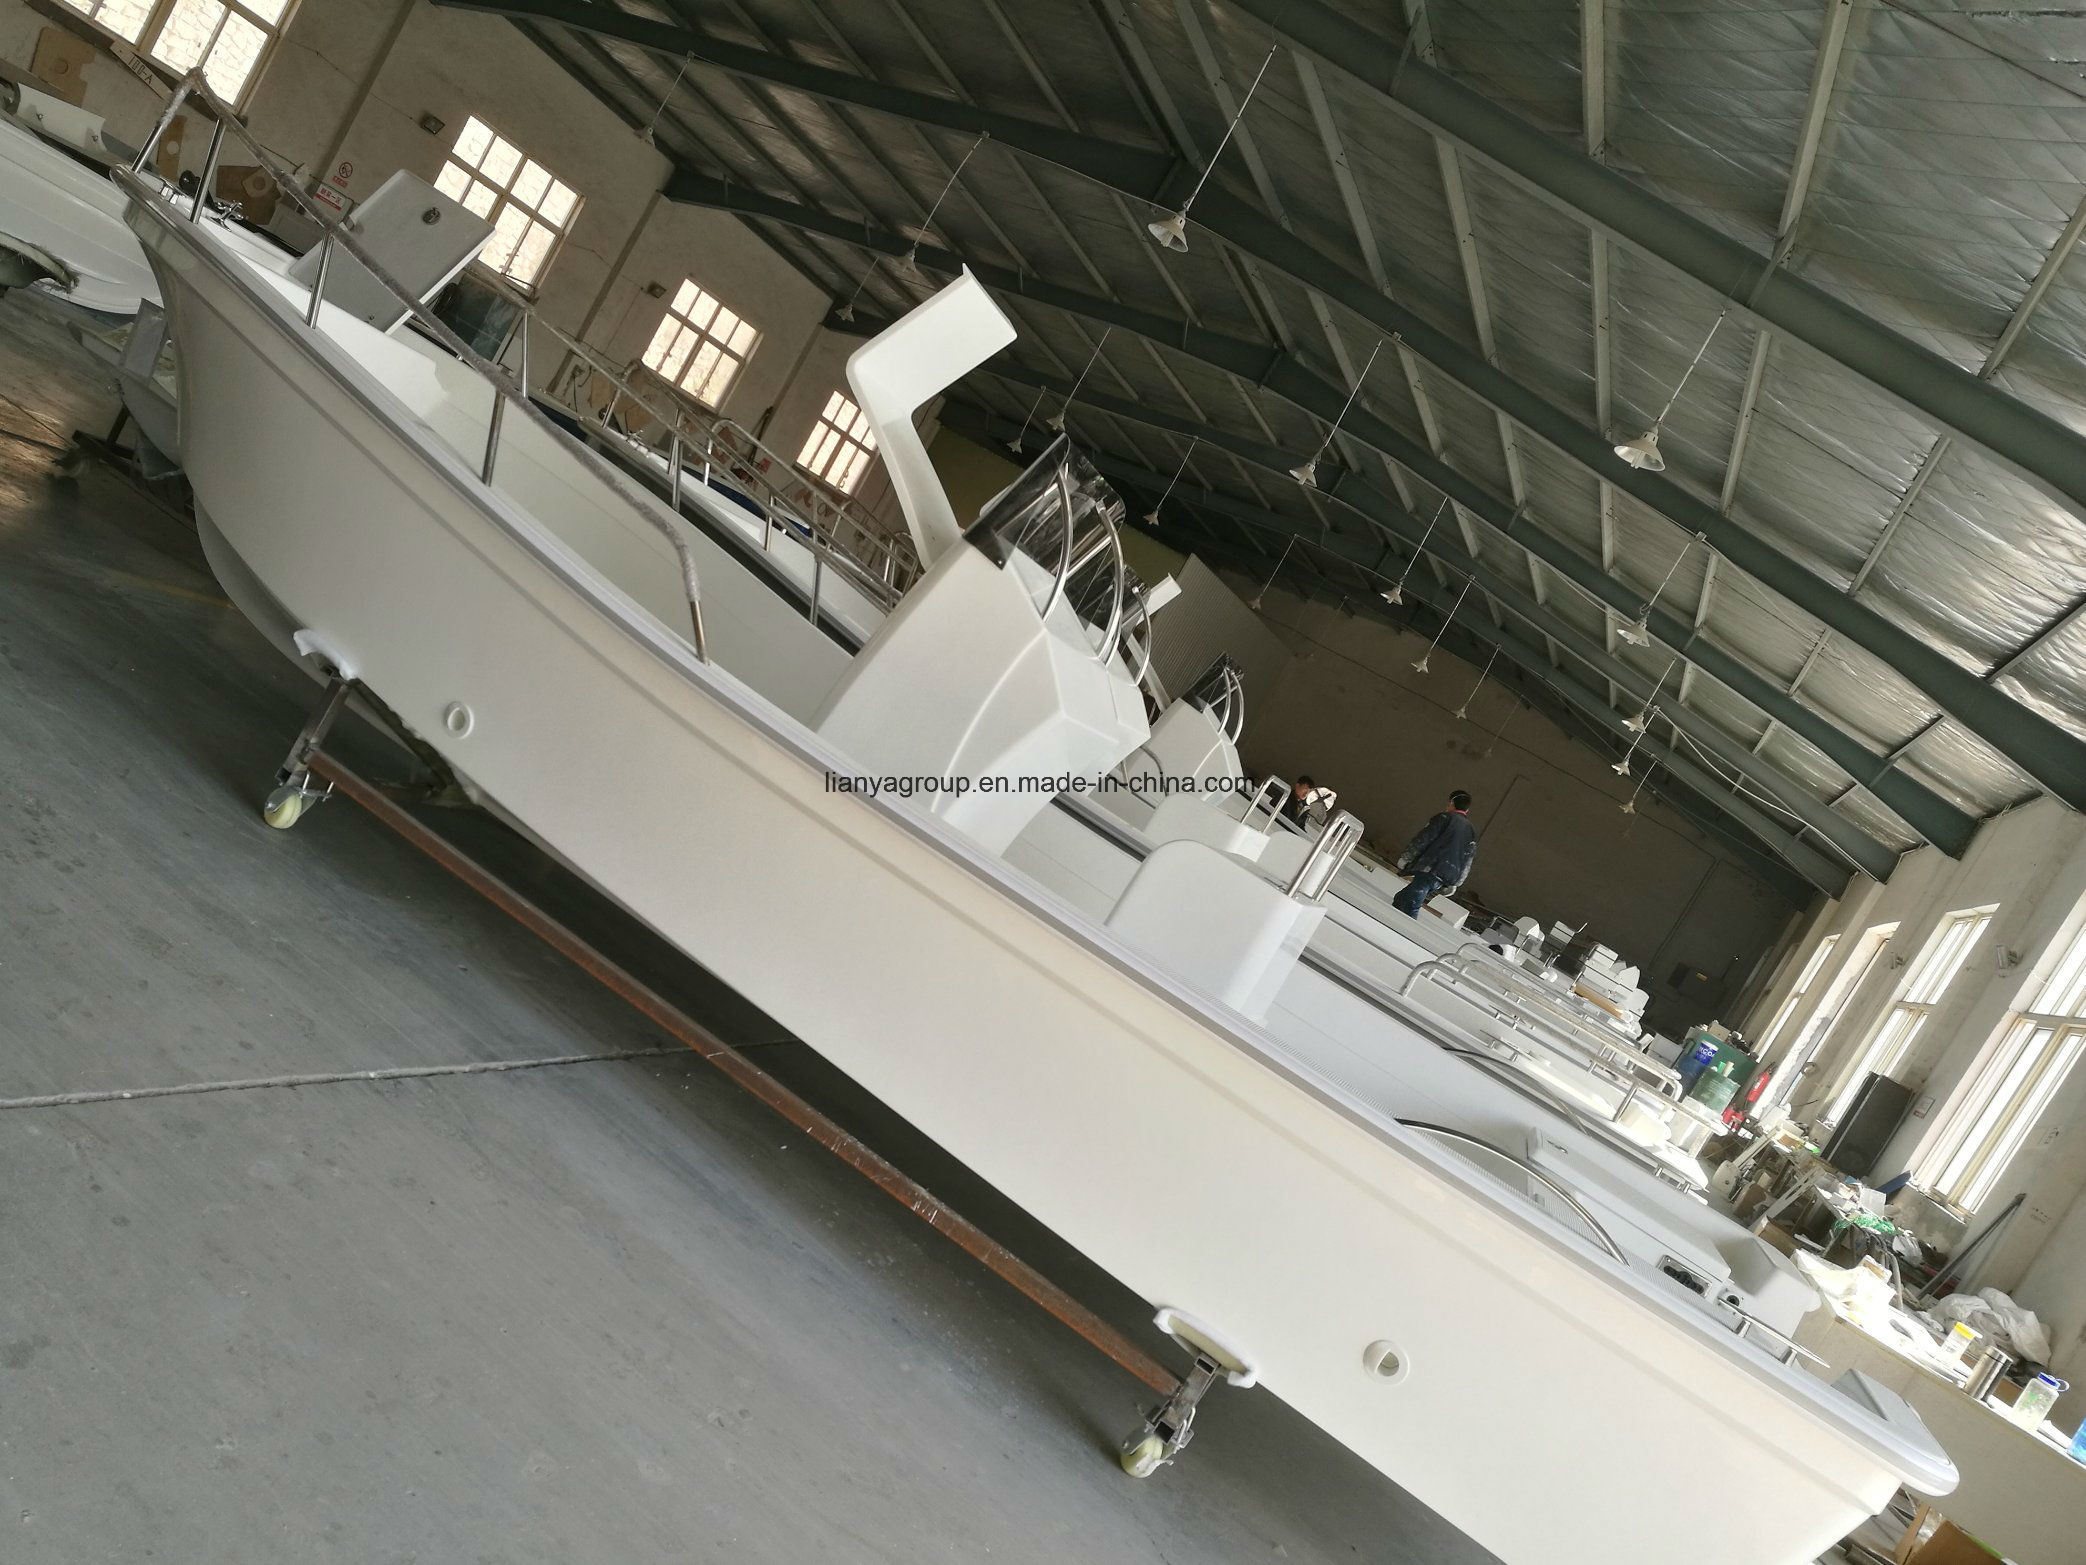 China Liya Inshore Power Fishing Boats 5 8m Panga Boat Factory